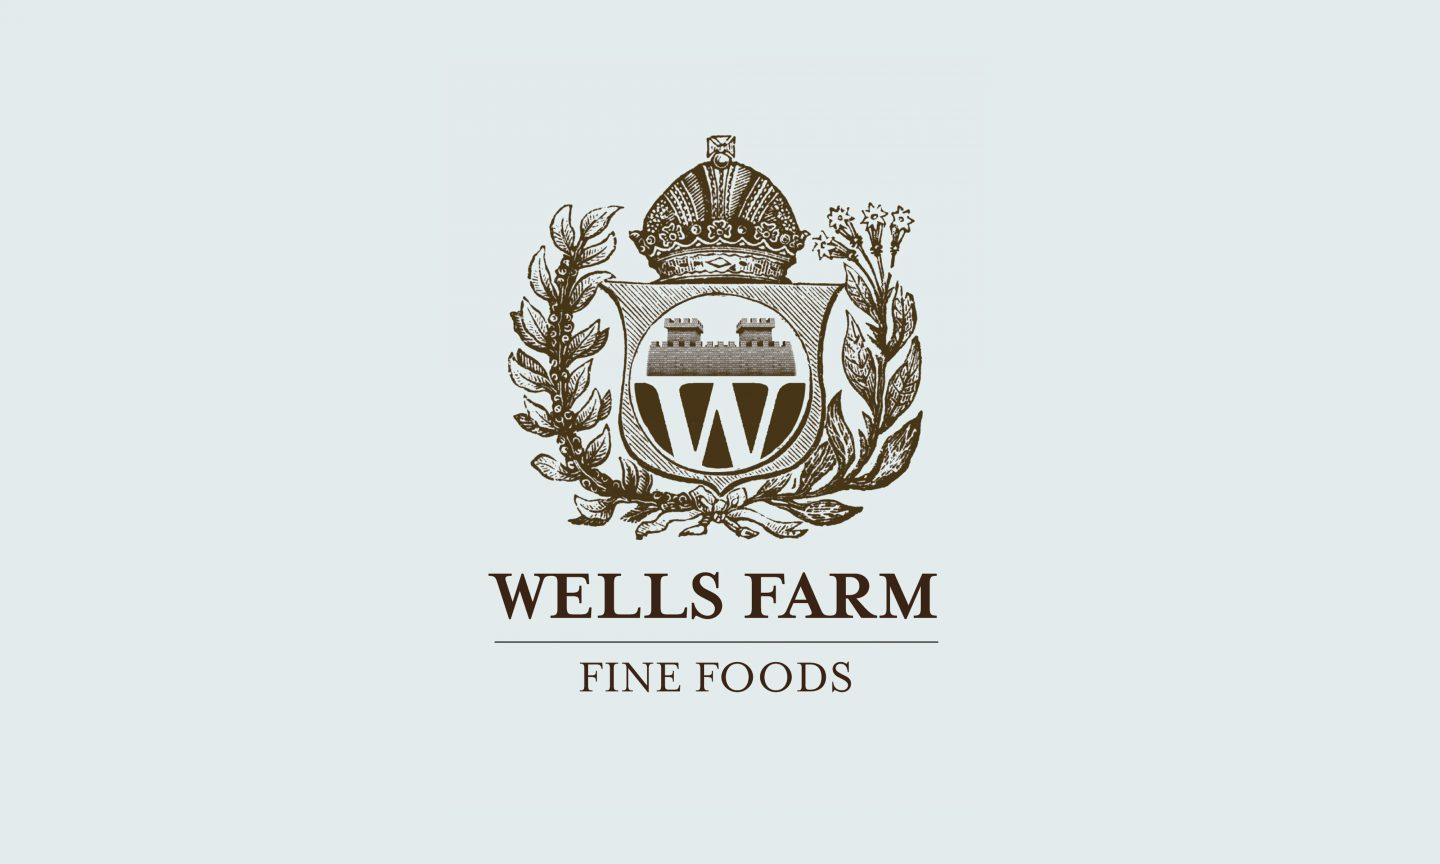 Wells Farm Fine Foods Logo design